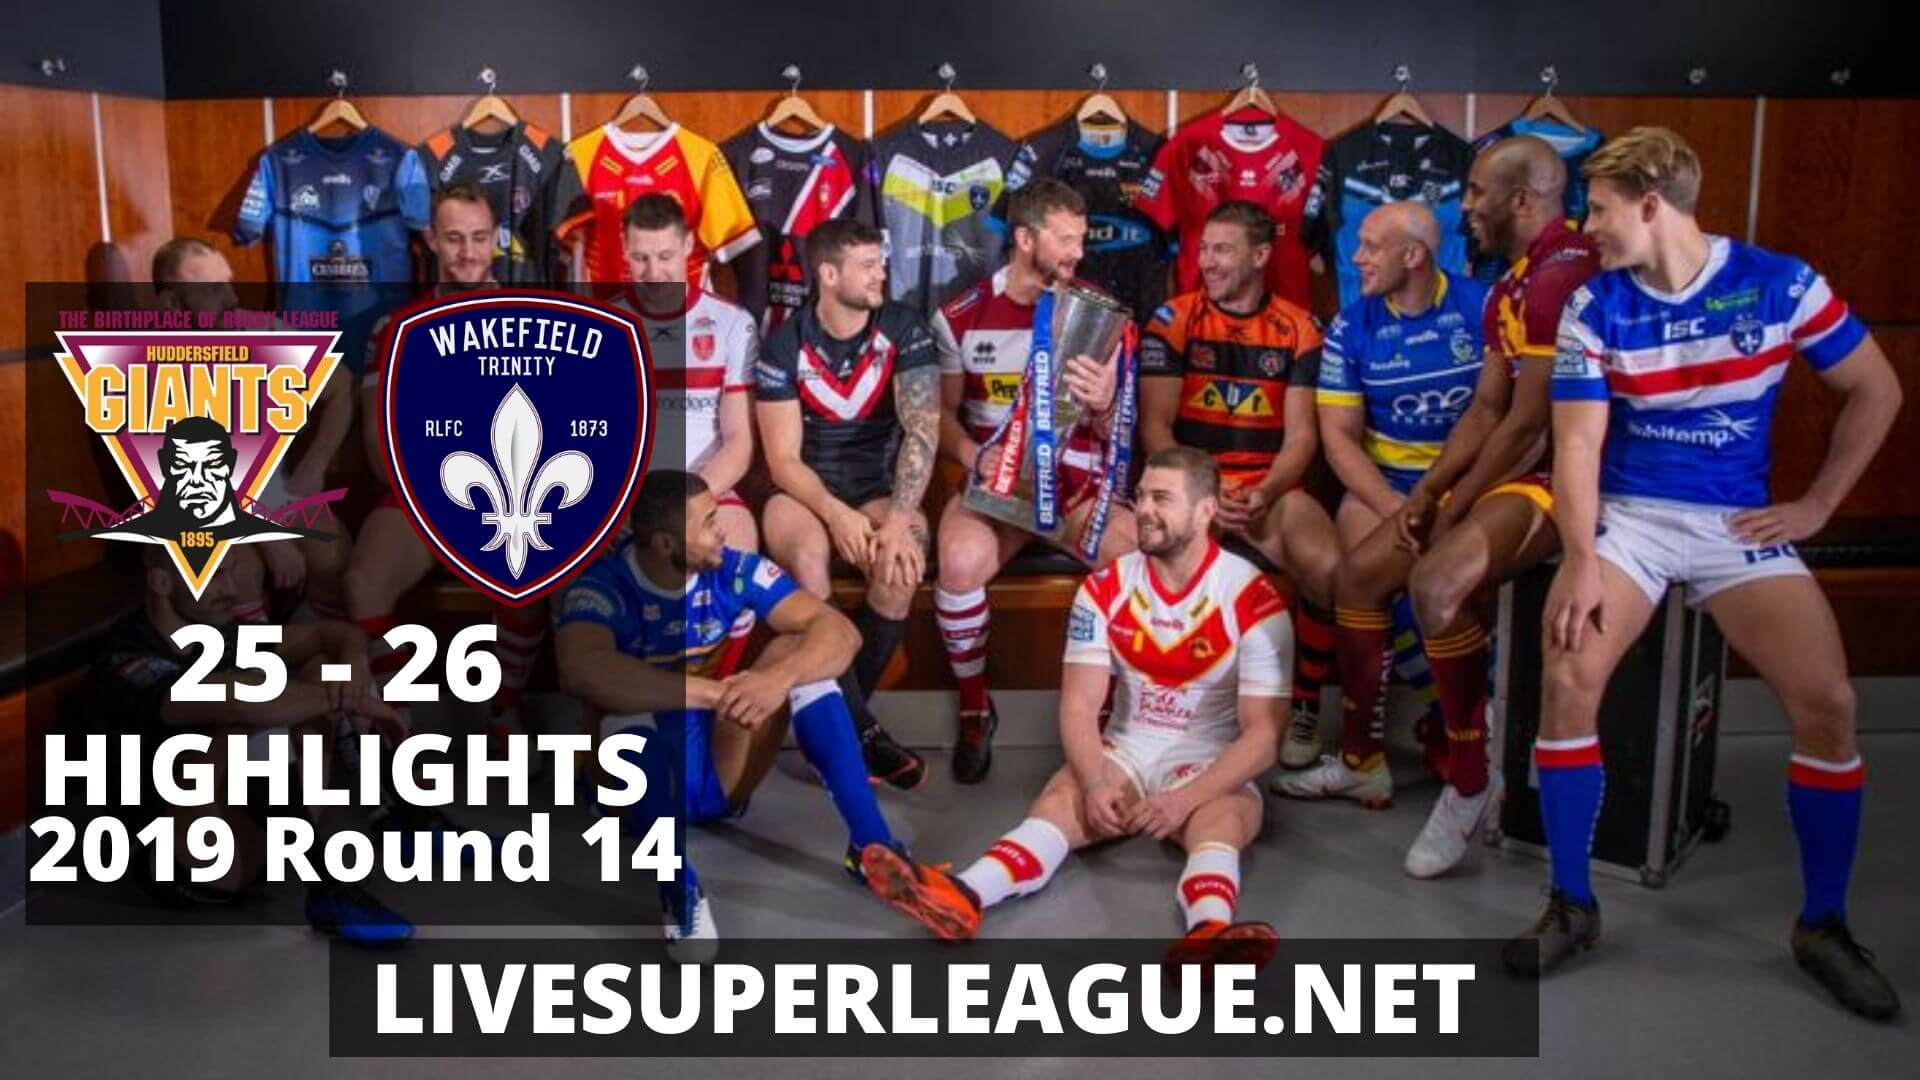 Huddersfield Giants Vs Wakefield Trinity Highlights 2019 Round 14